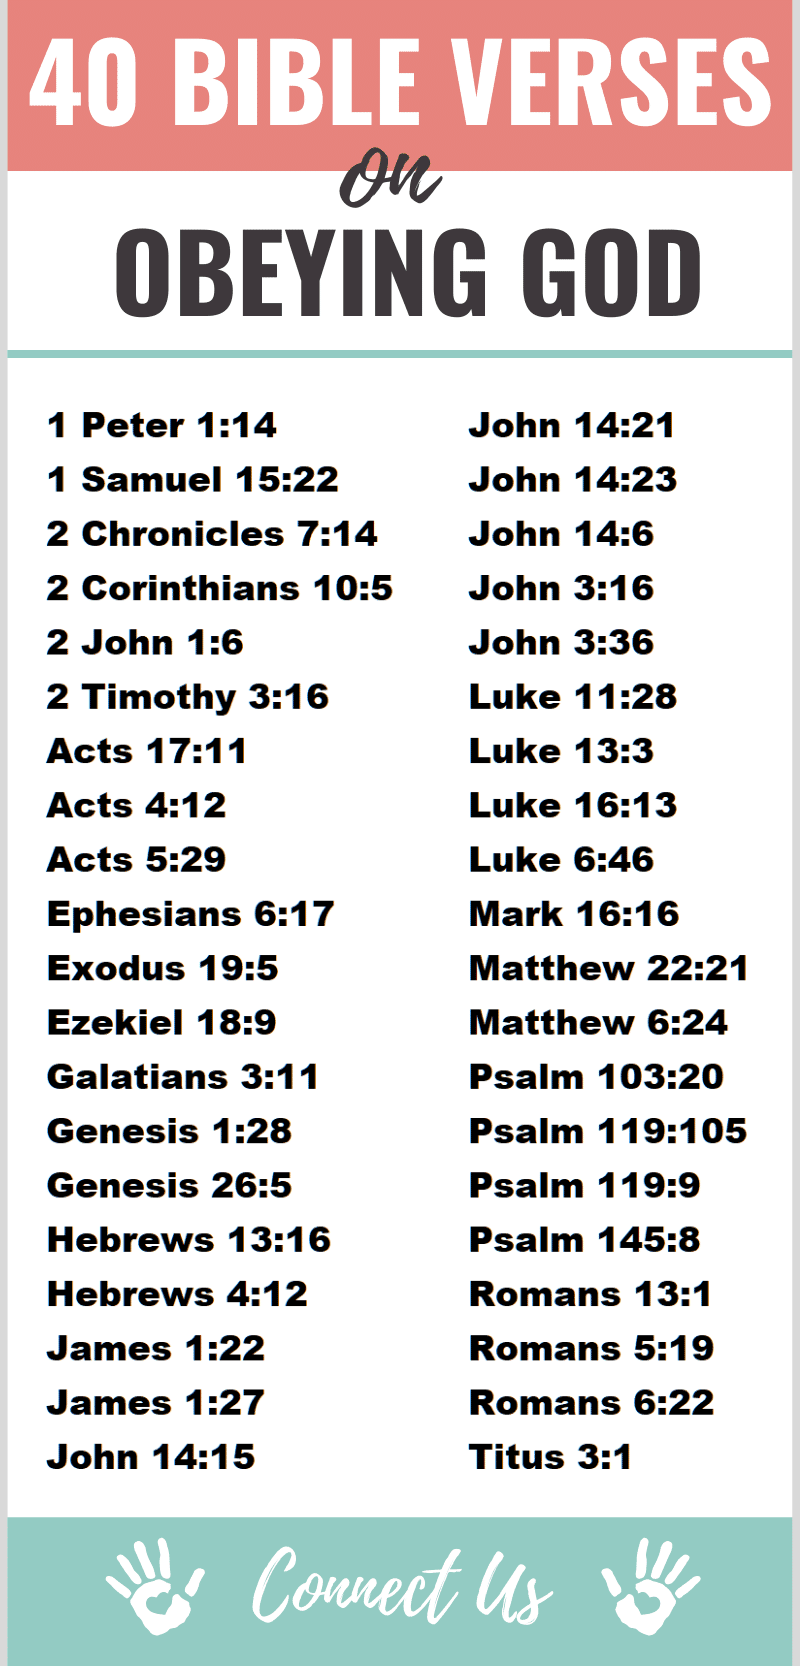 Bible Verses on Obeying God